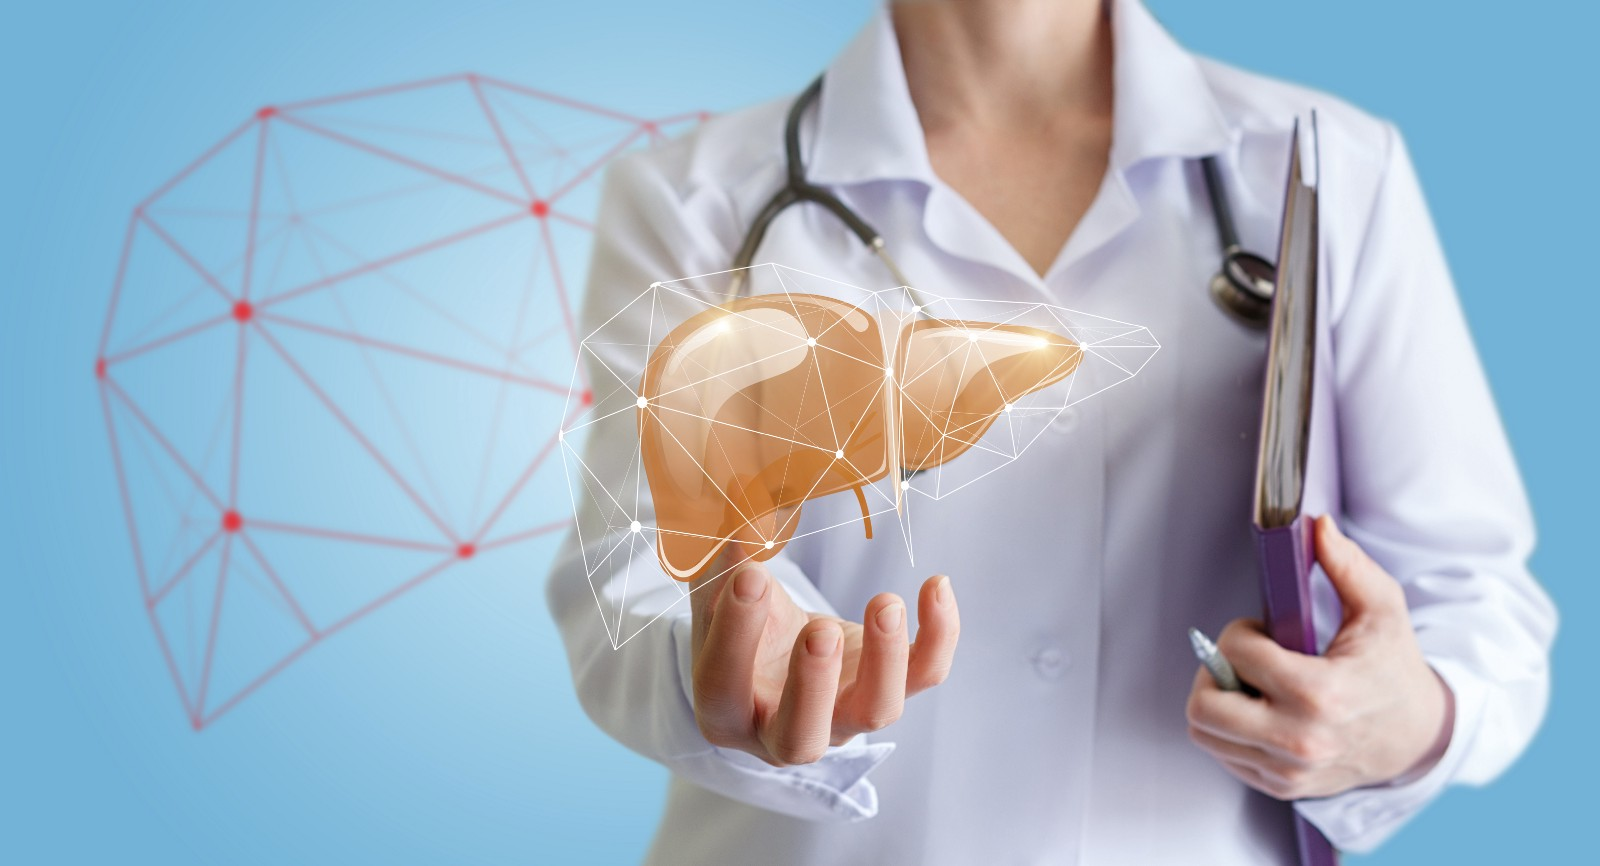 Developing Tests To Assess Liver Function The Liver Line